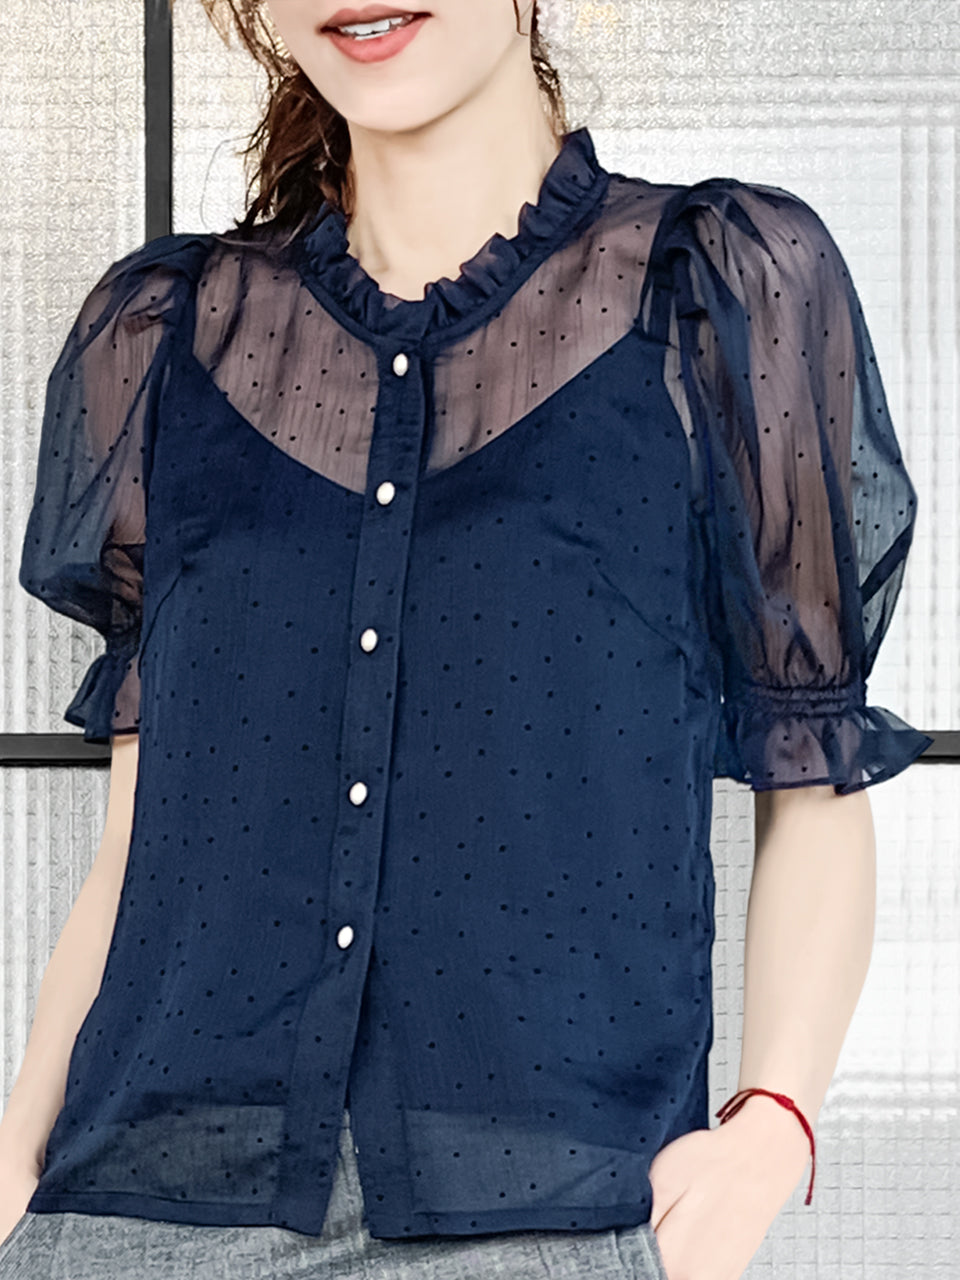 Classy Navy Ruffle Trim Puff Sleeve Clip Dots Top